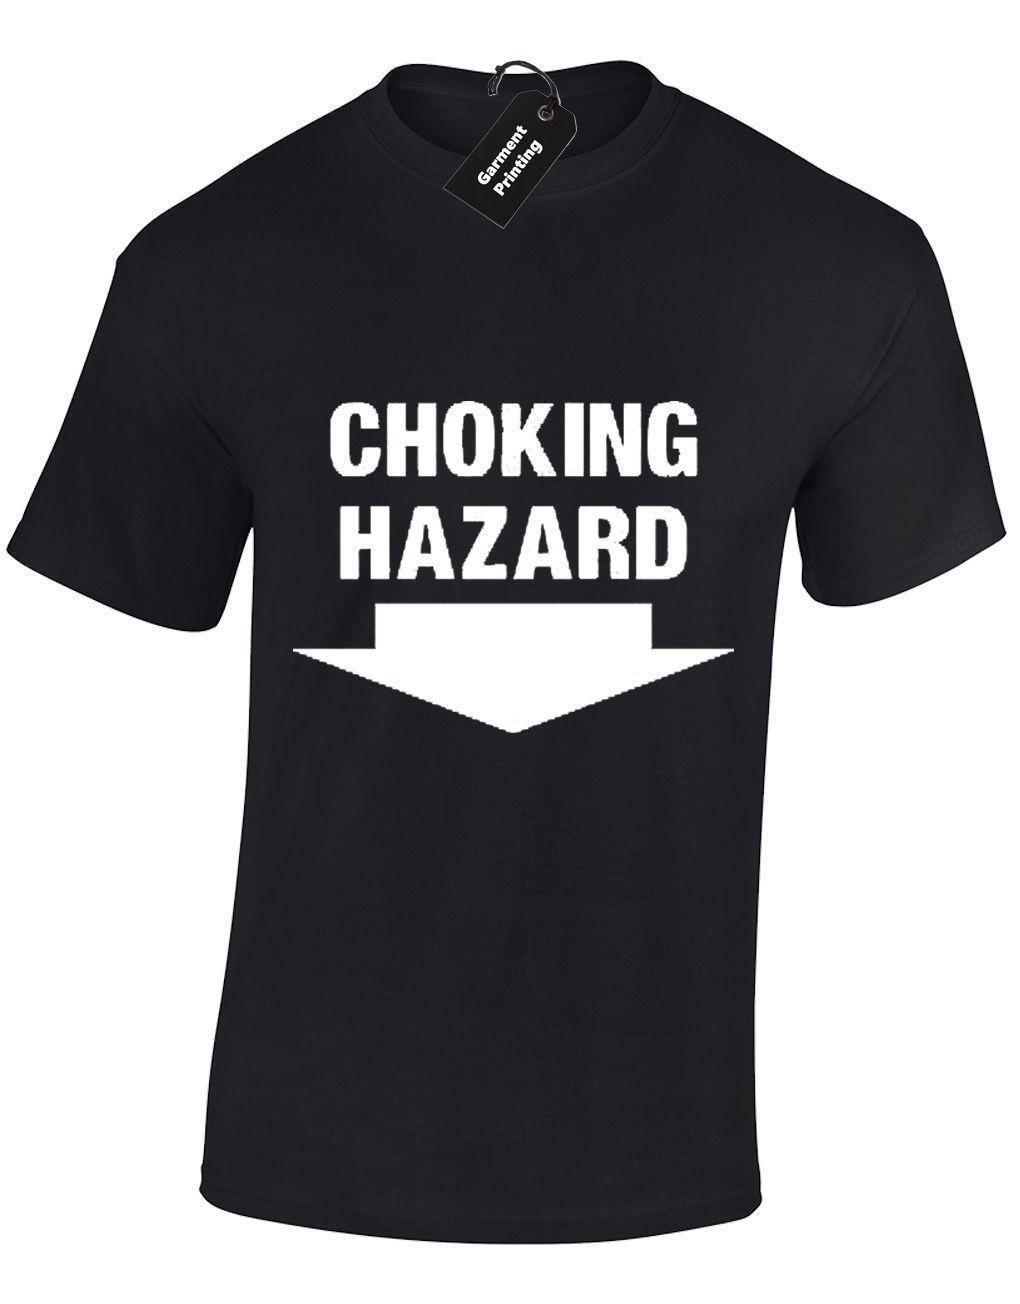 CHOKING HAZARD MENS T SHIRT RUDE FUNNY ADULT STAG PARTY HUMOUROUS